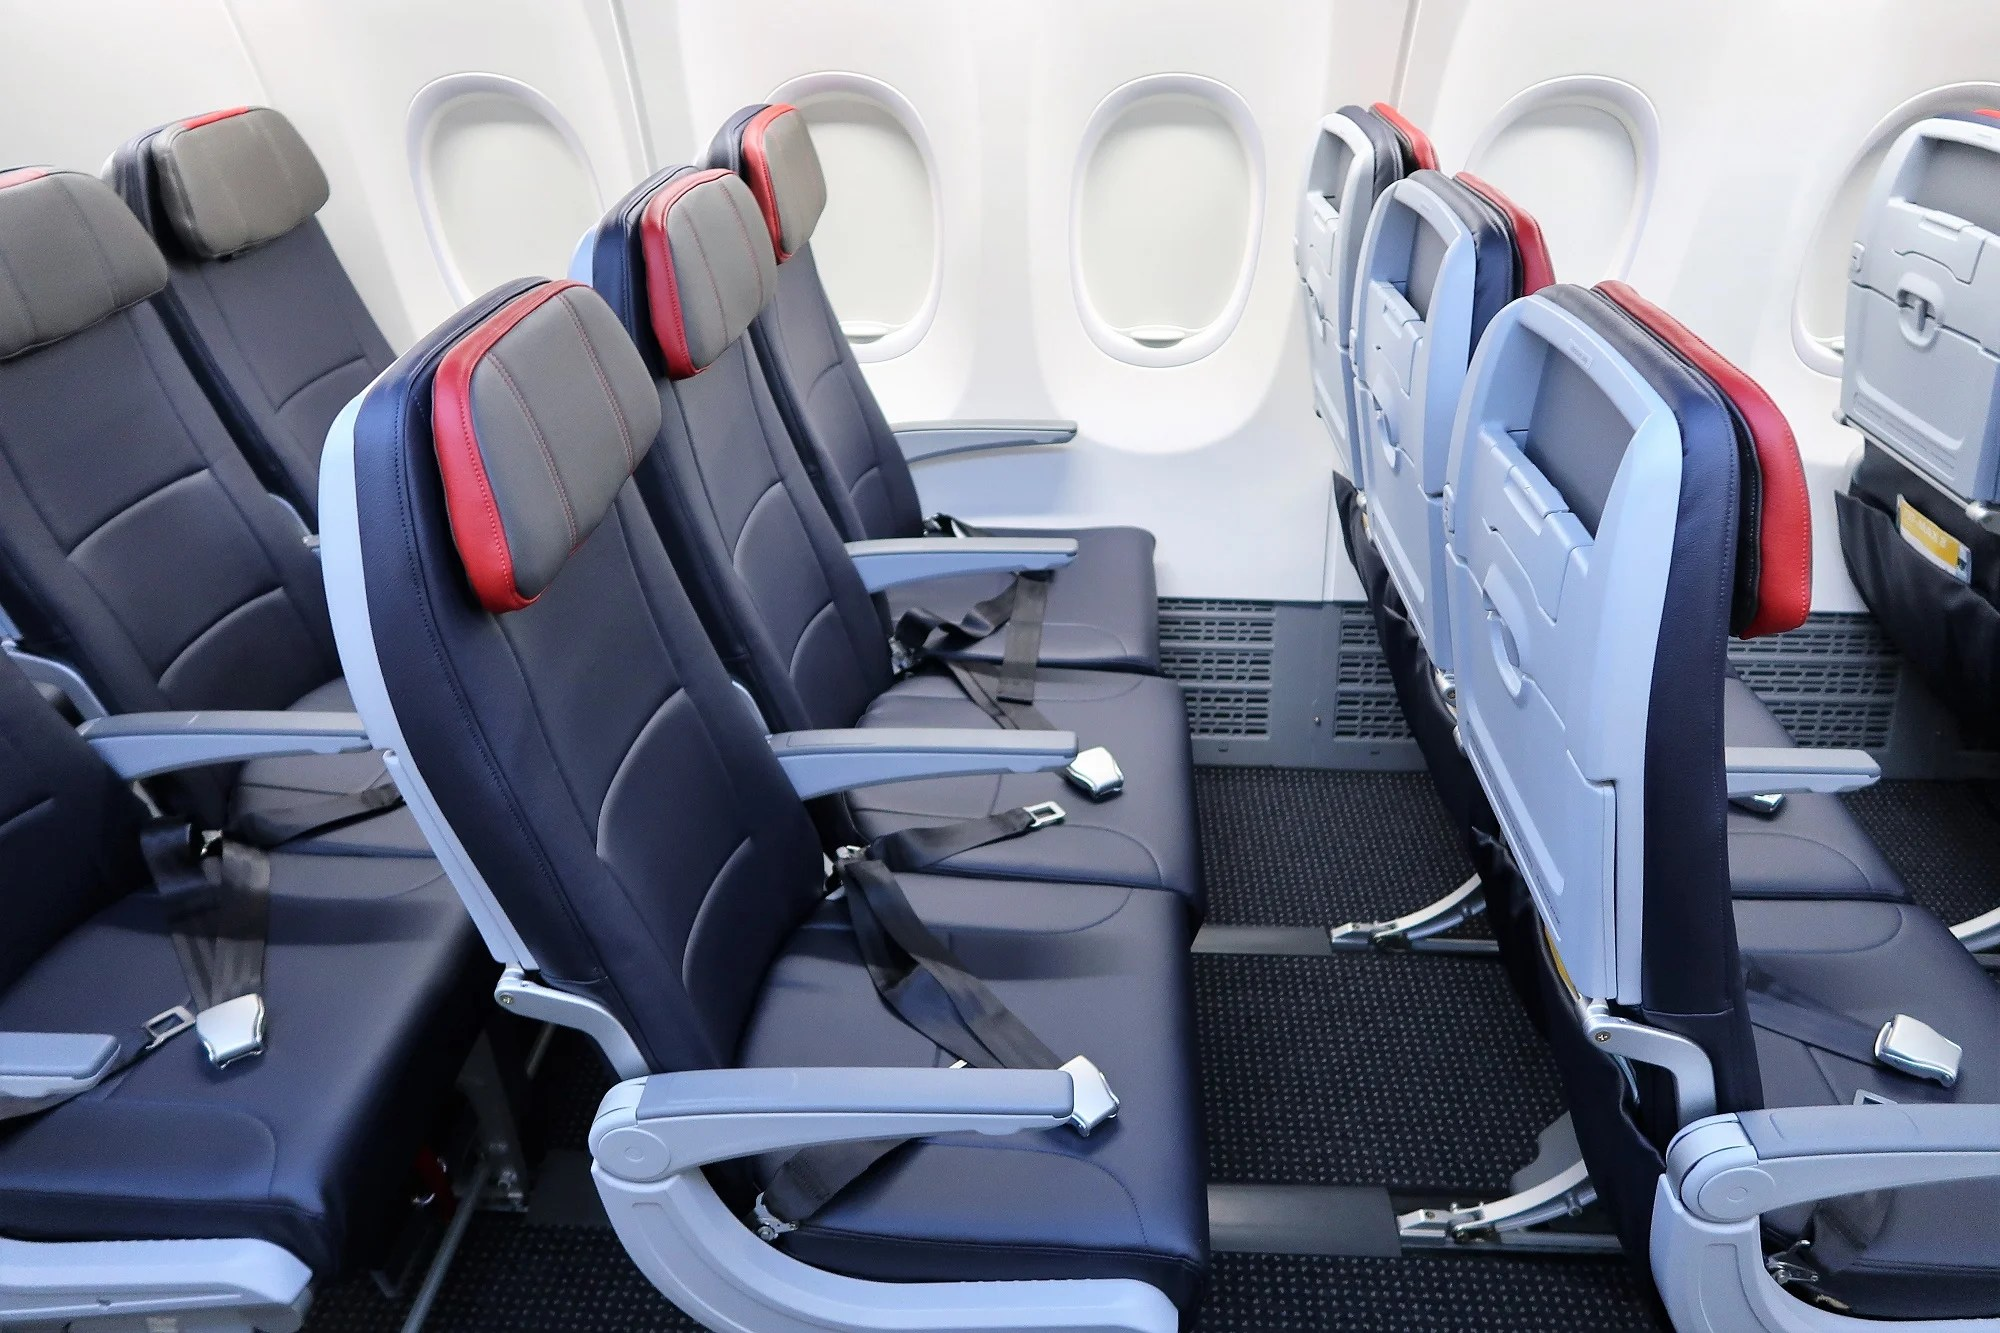 Deal Alert: 39 Domestic Award Routes Pricing at Just 5,000 Miles Each Way